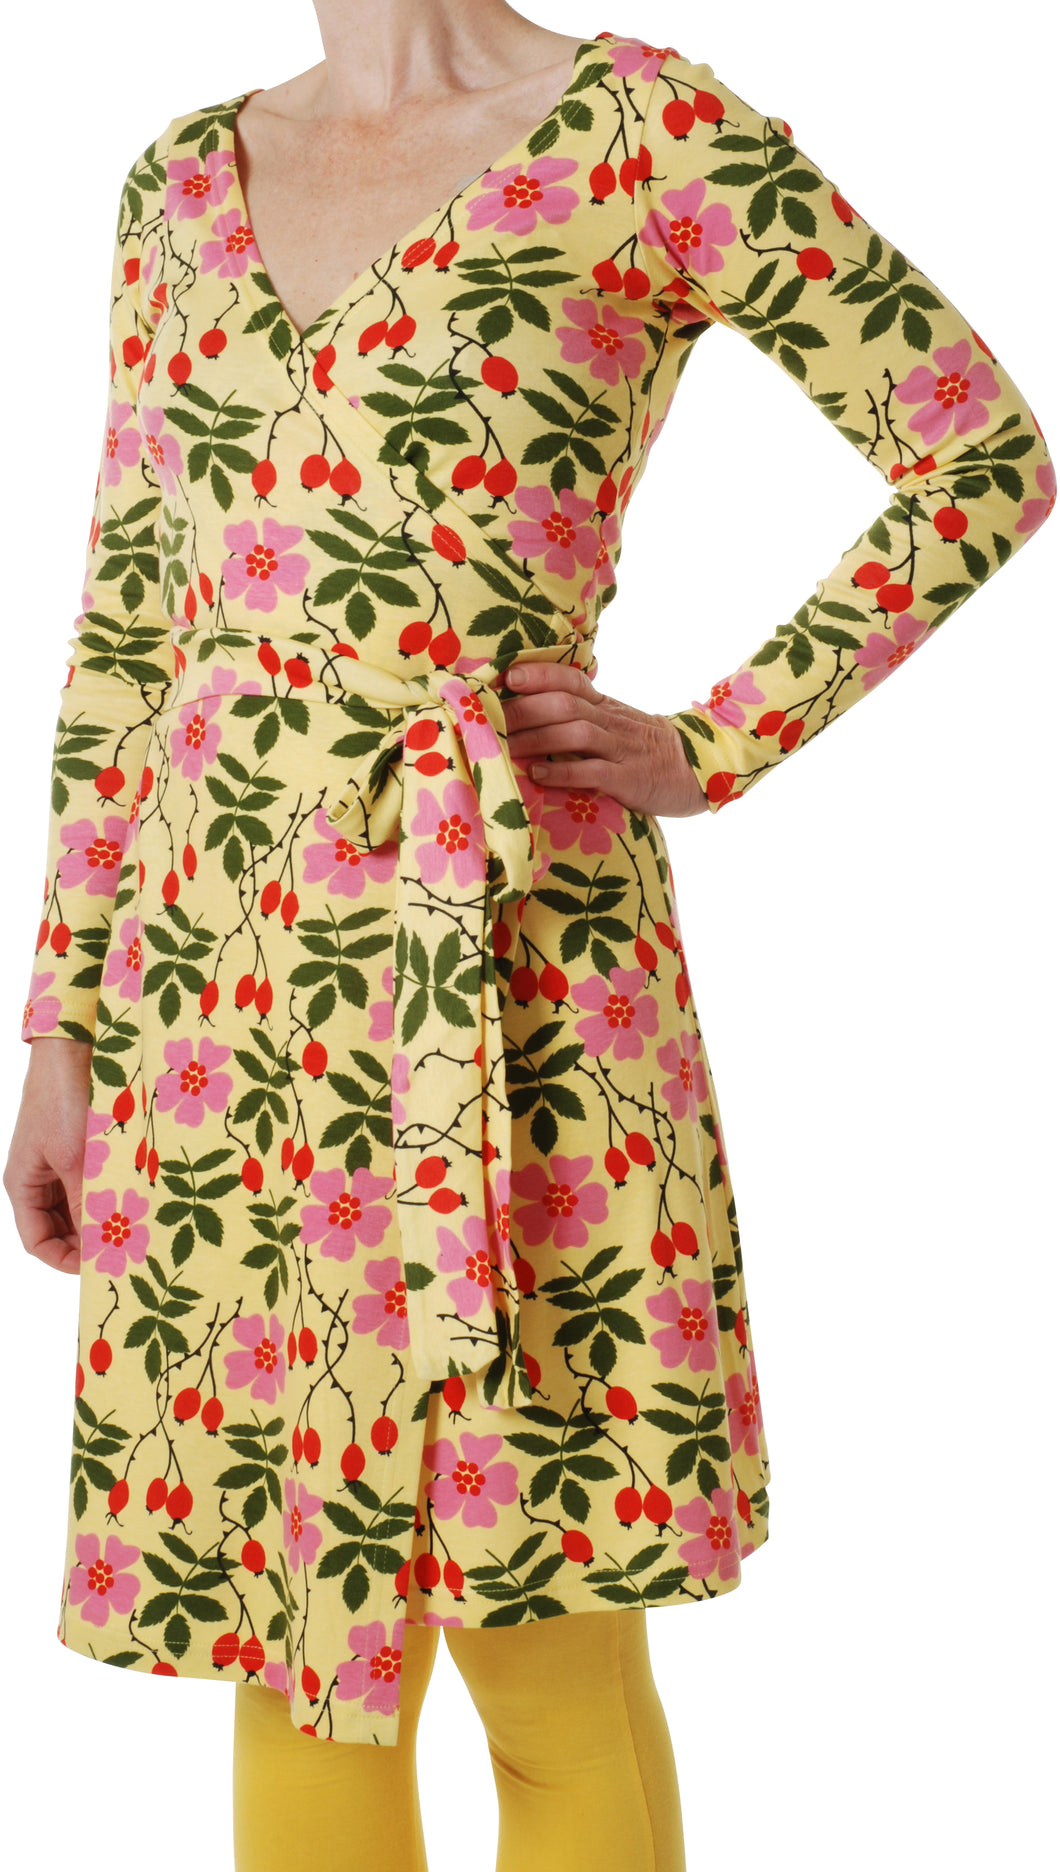 Duns - Rosehip Yellow - Long Sleeve Wrap Dress